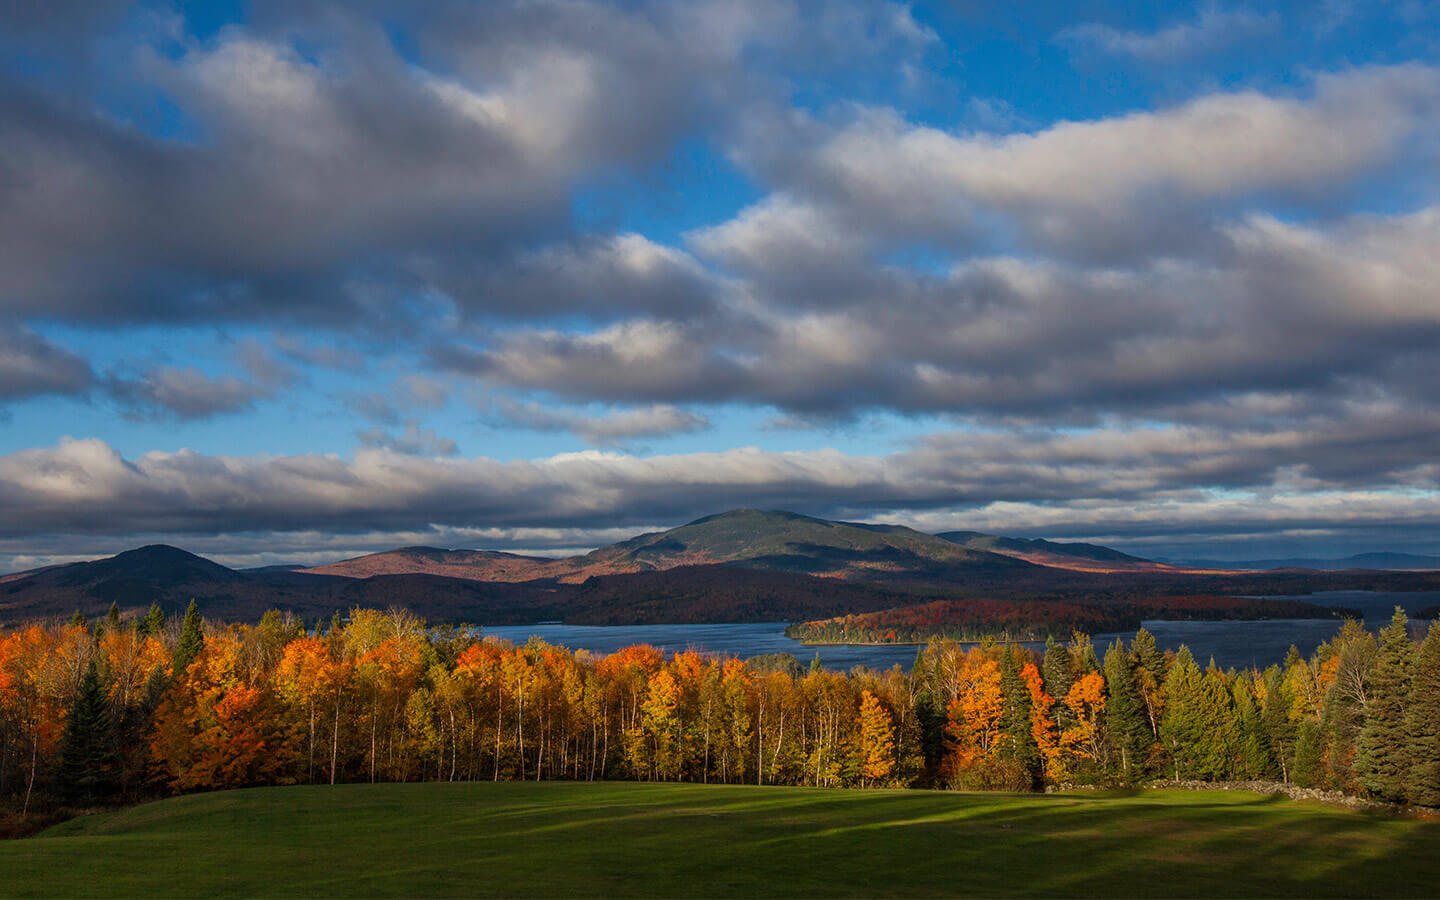 Scenery Wallpaper Fall Vacationing In Maine Fall Foliage Getaway In Maine